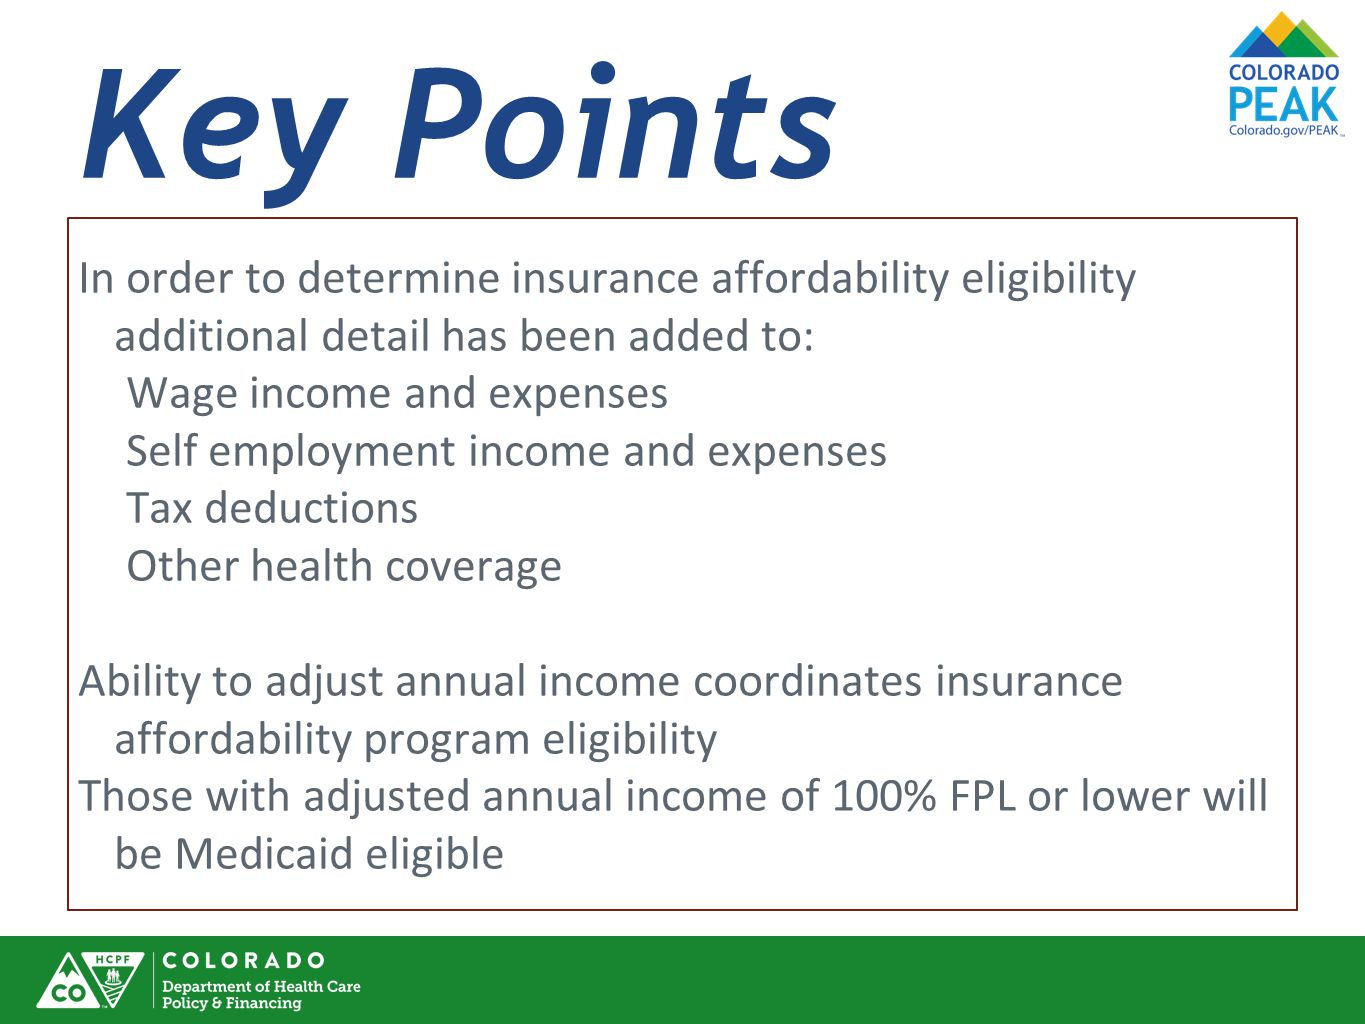 Key Points In order to determine insurance affordability eligibility additional detail has been added to: Wage income and expenses Self employment income and expenses Tax deductions Other health coverage Ability to adjust annual income coordinates insurance affordability program eligibility Those with adjusted annual income of 100% FPL or lower will be Medicaid eligible